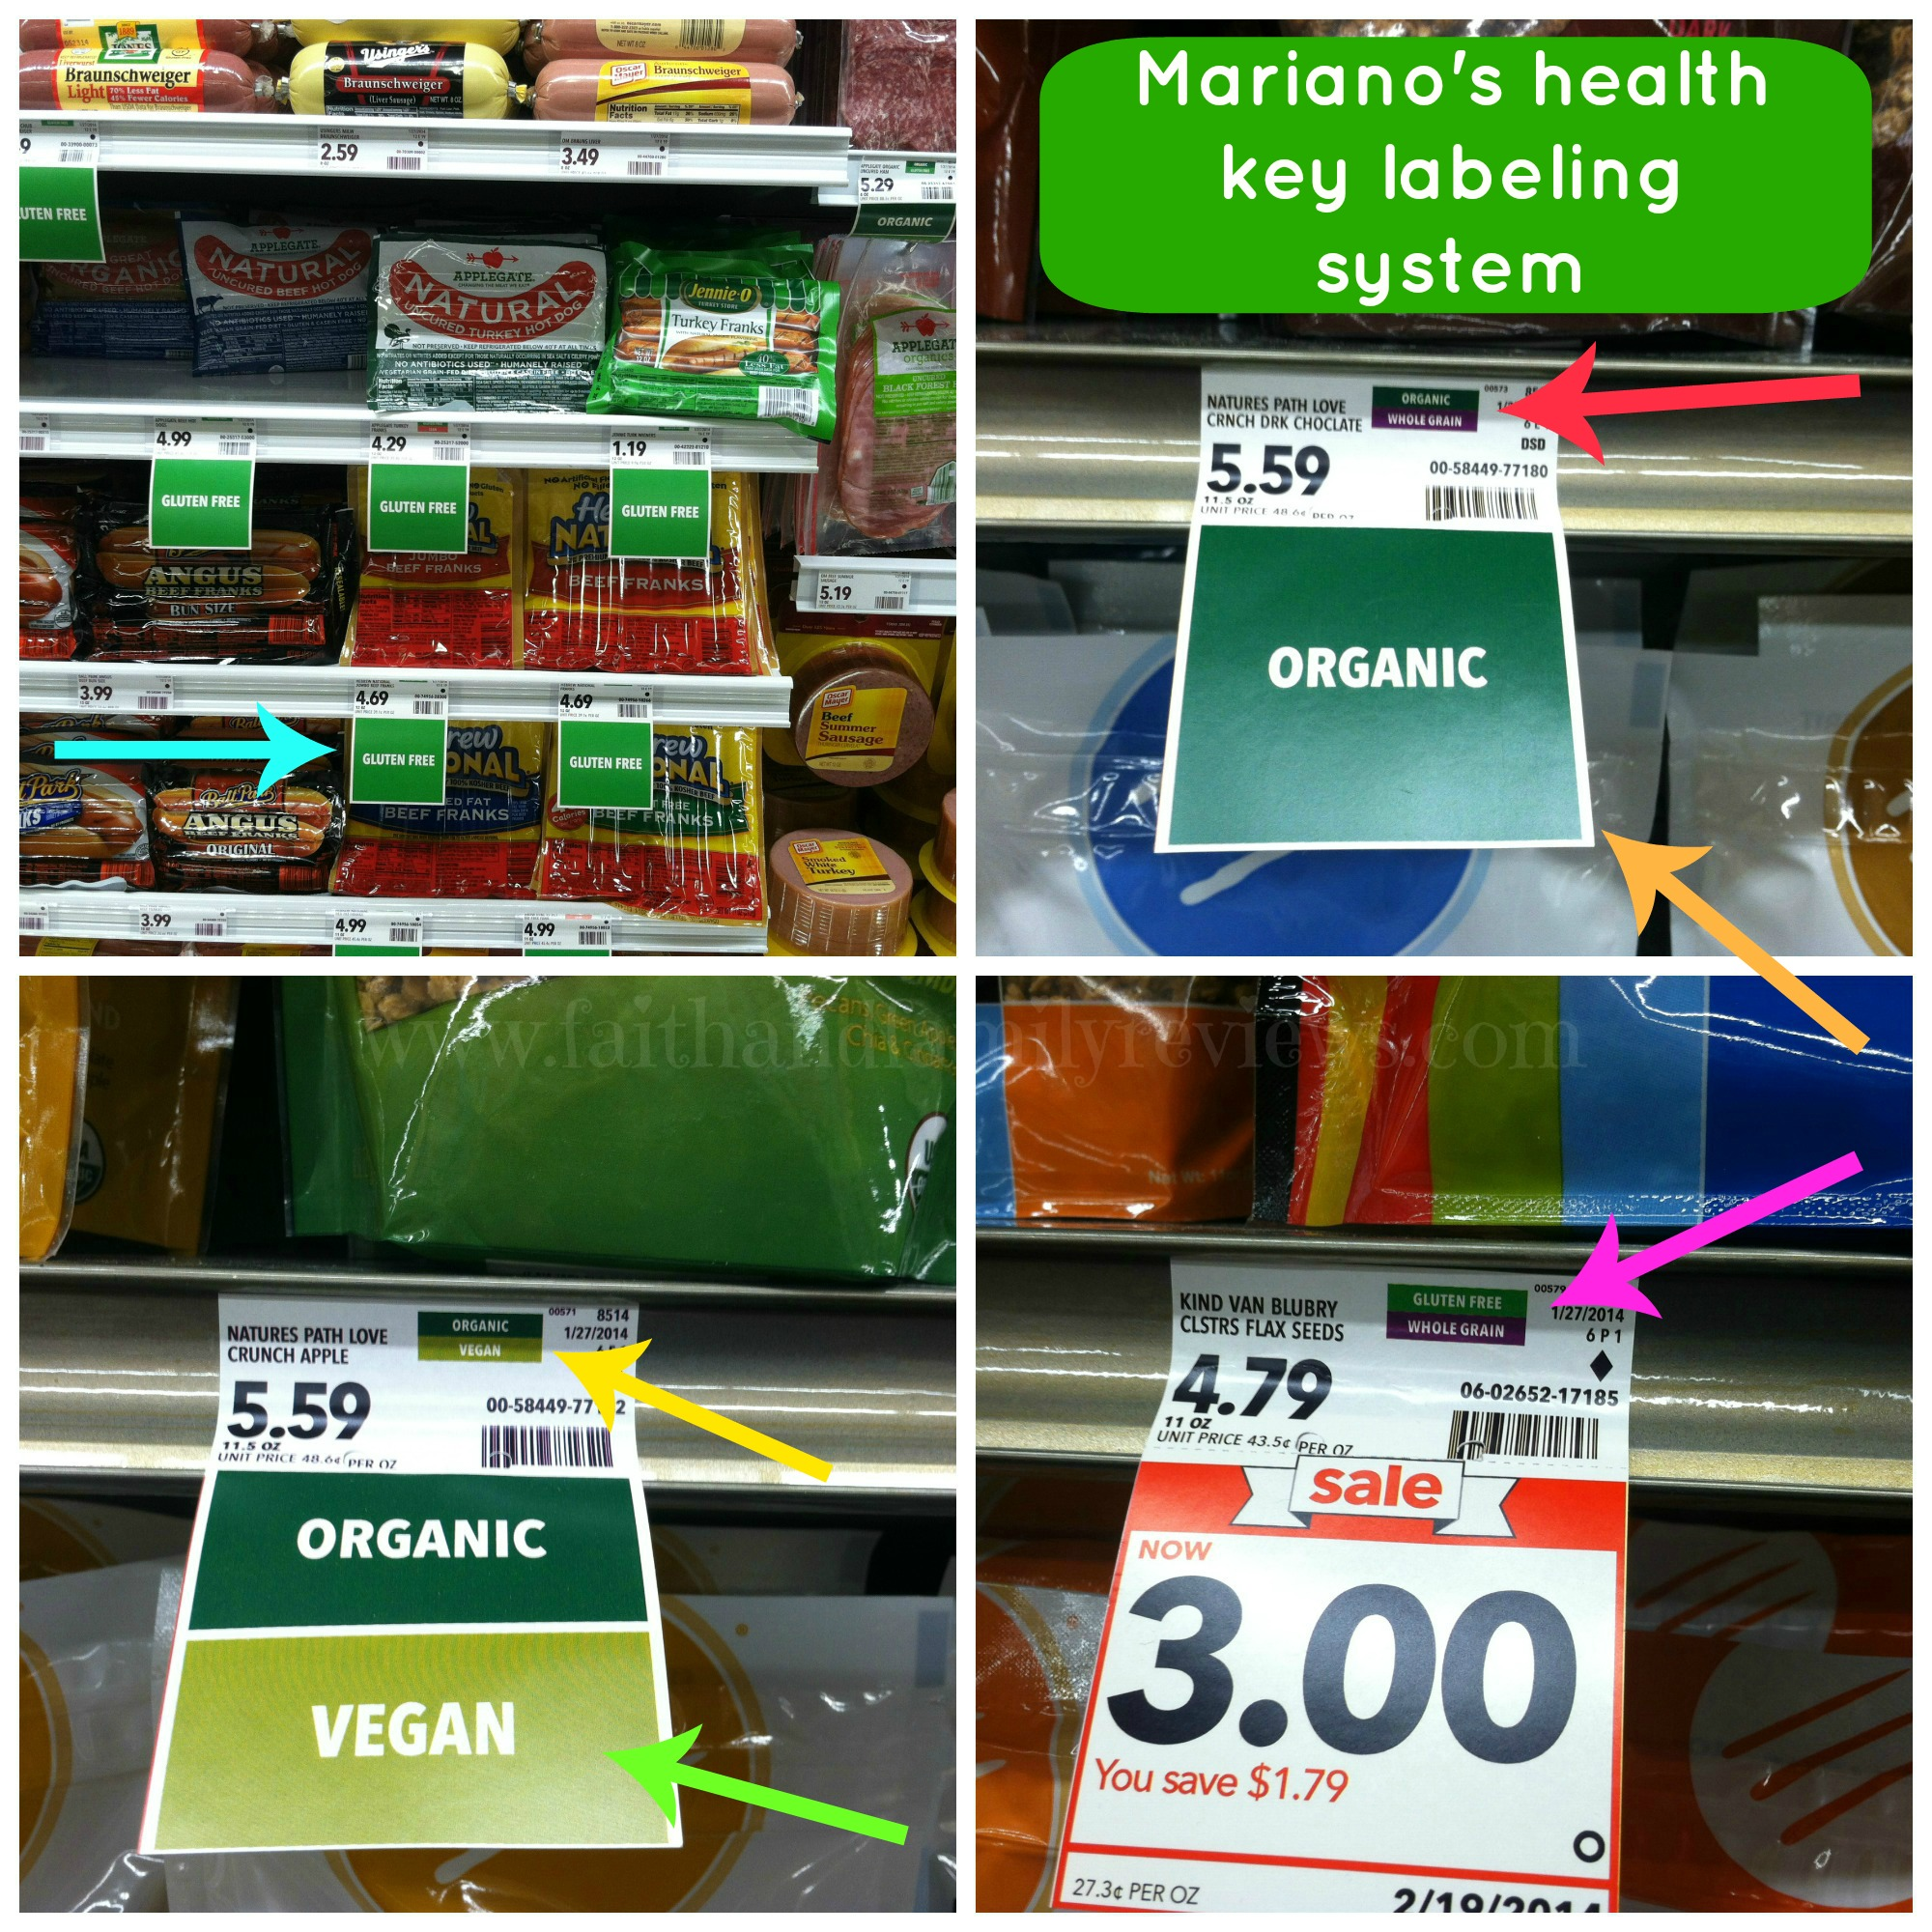 FFR Grocery Store Chicago Mariano's Lk Zurich Health Key